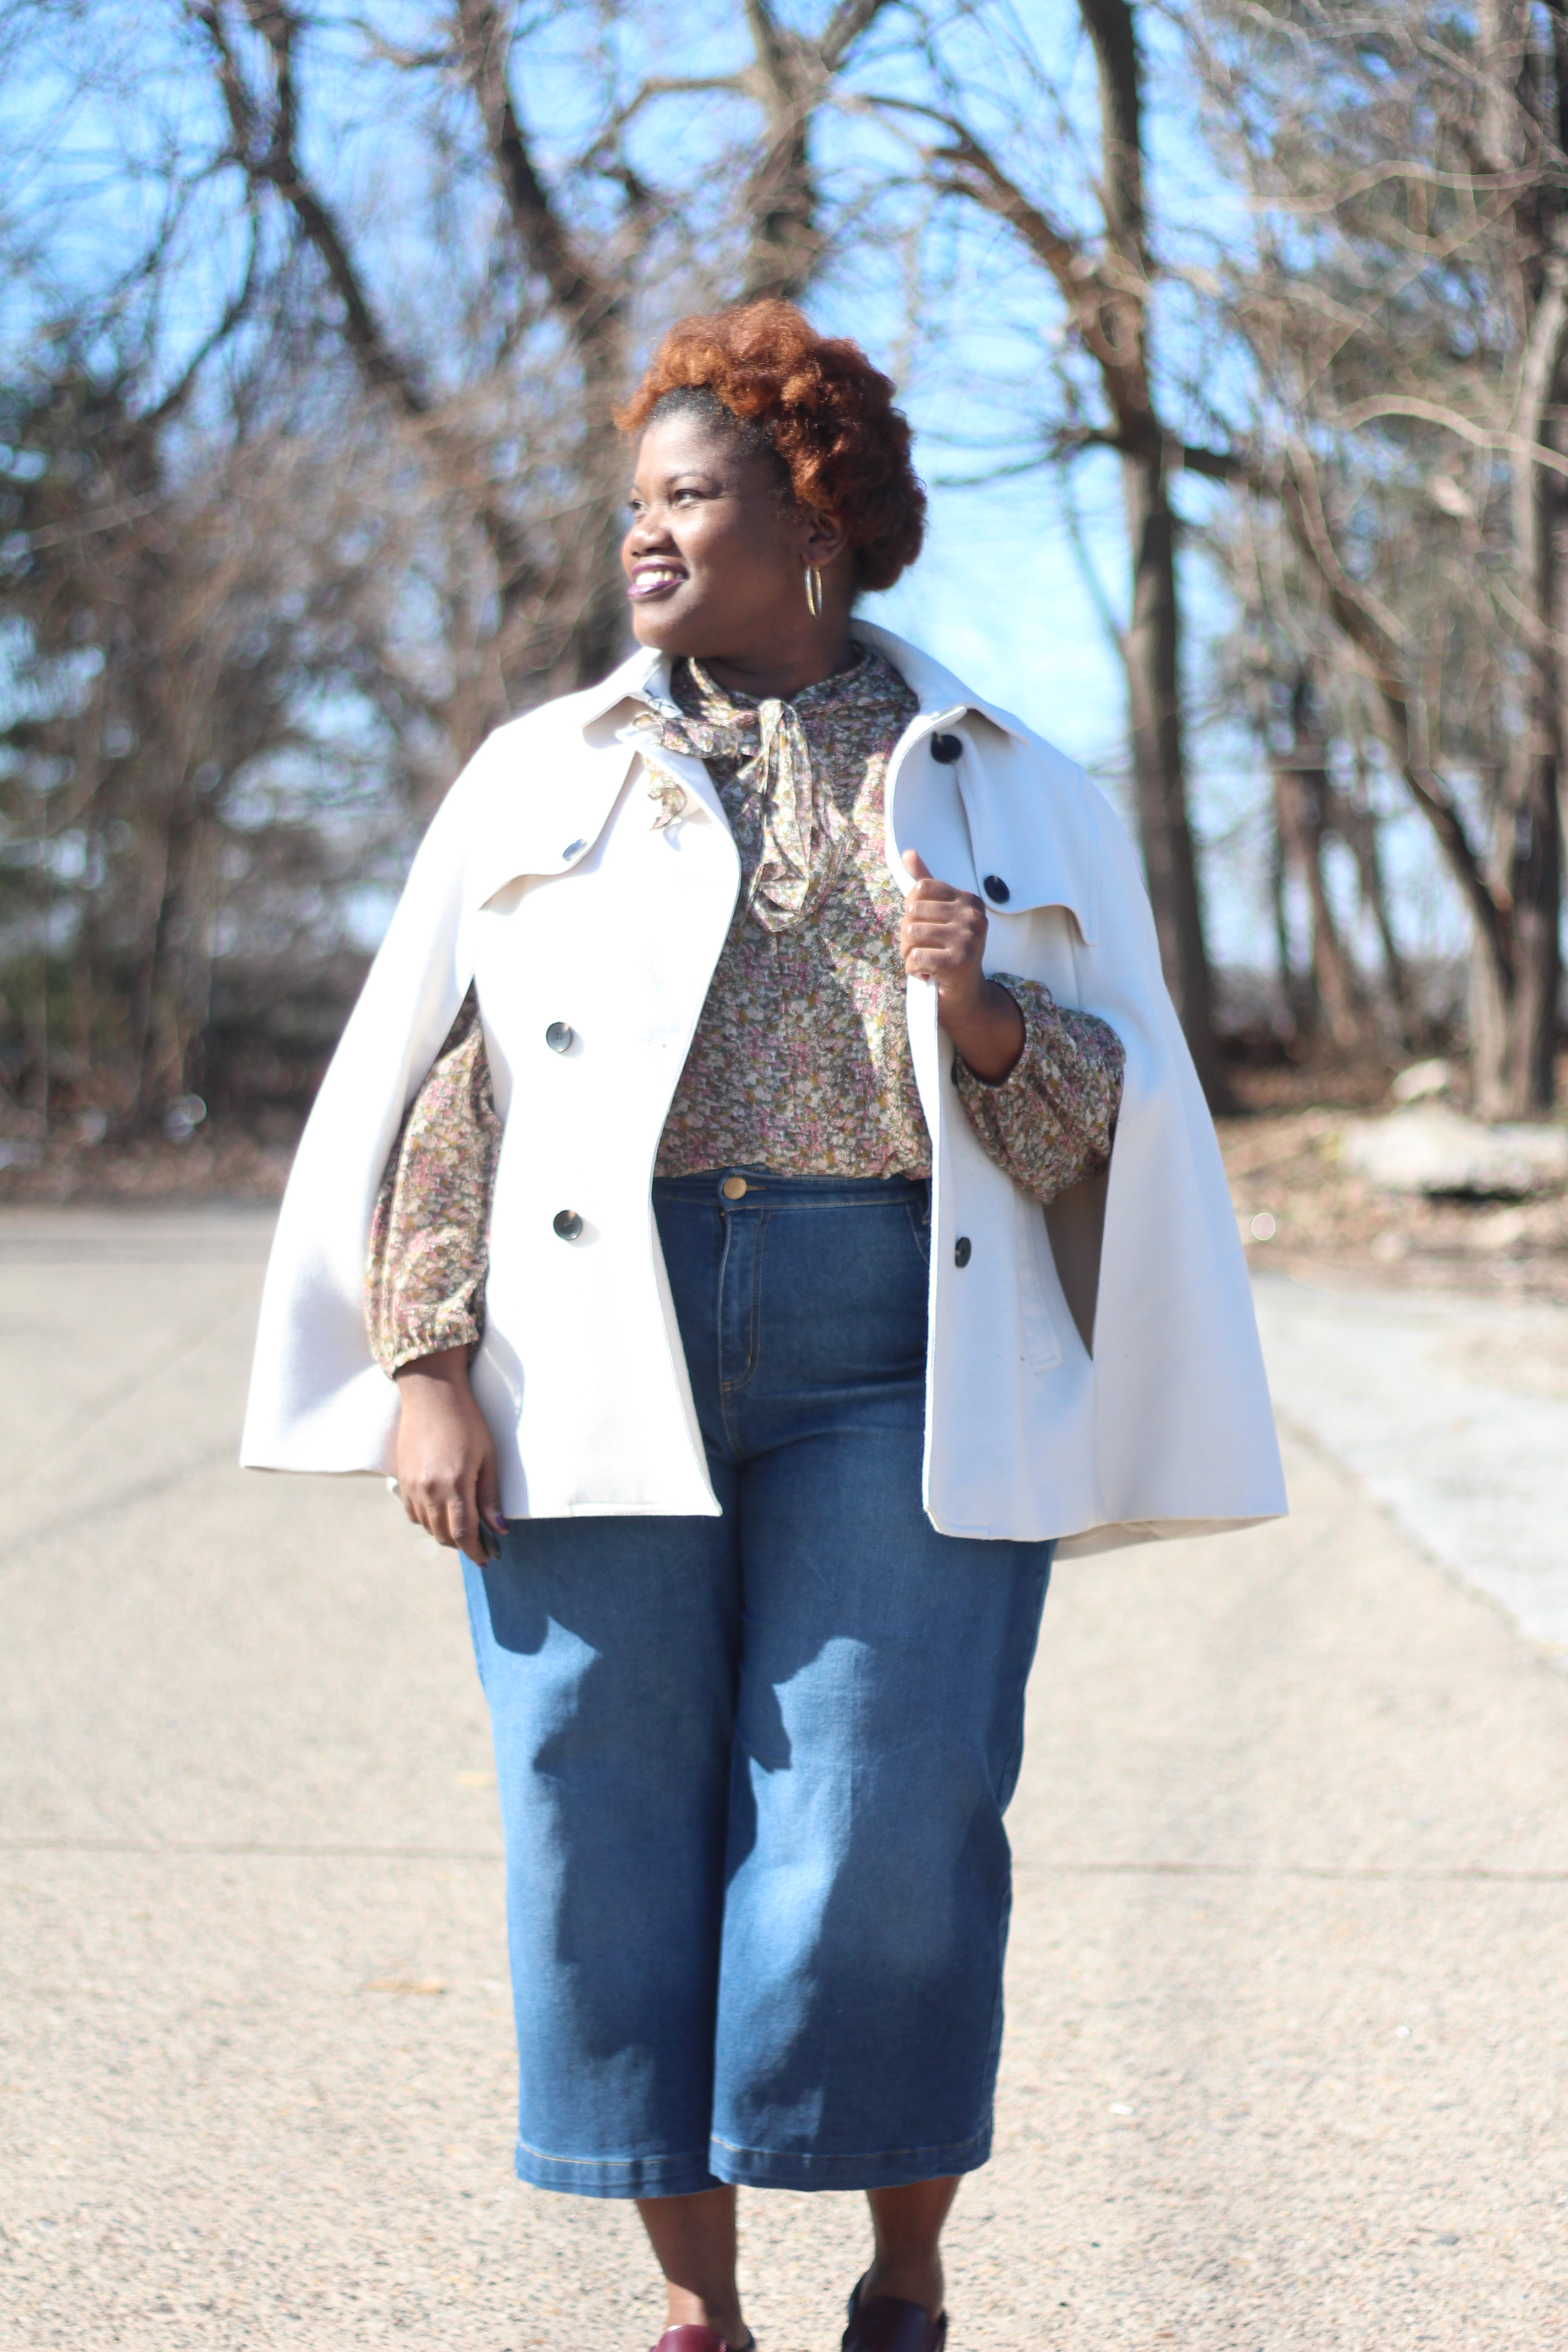 plus size clothing, plus size blogs, plus size fashion, plus size bloggers, capes, tie neck blouse, culottes, denim culottes, slip on sneakers, spring, eloquii, curvy women, curvy woman, curvy girl, curvy blogs, curvy bloggers, natural hair